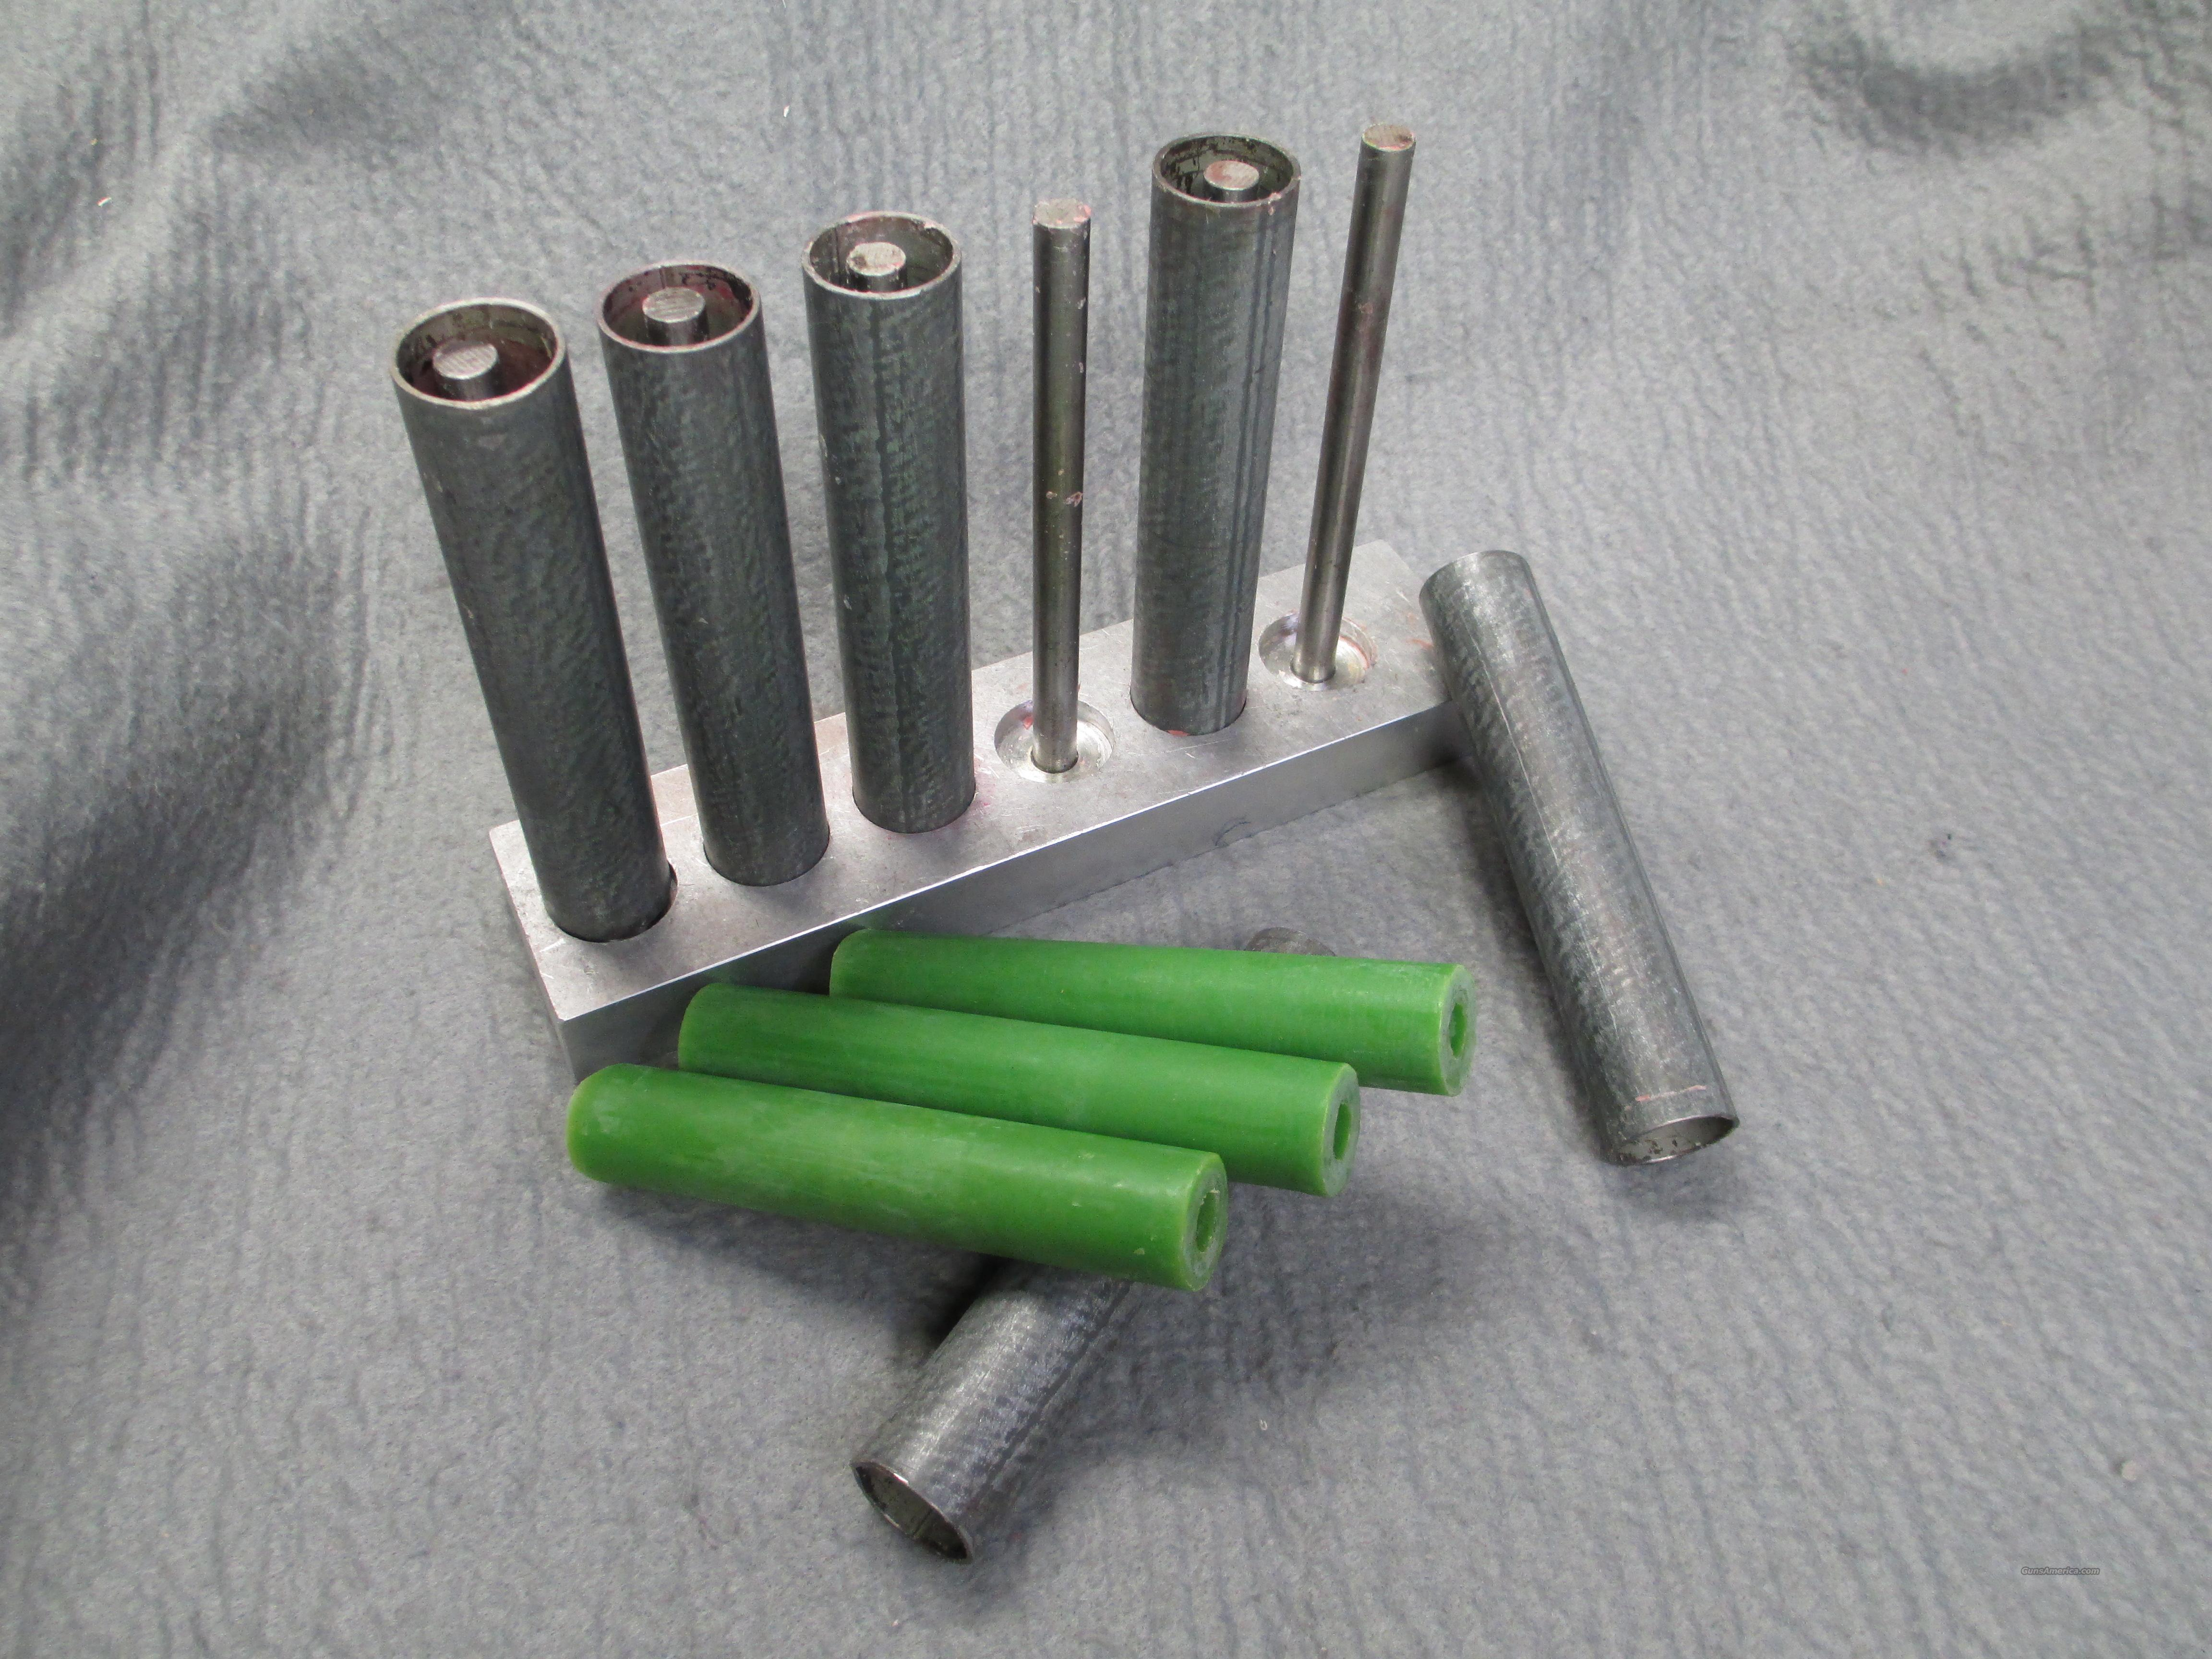 BULLET LUBE CASTING MOLD   Non-Guns > Bullet Making Supplies